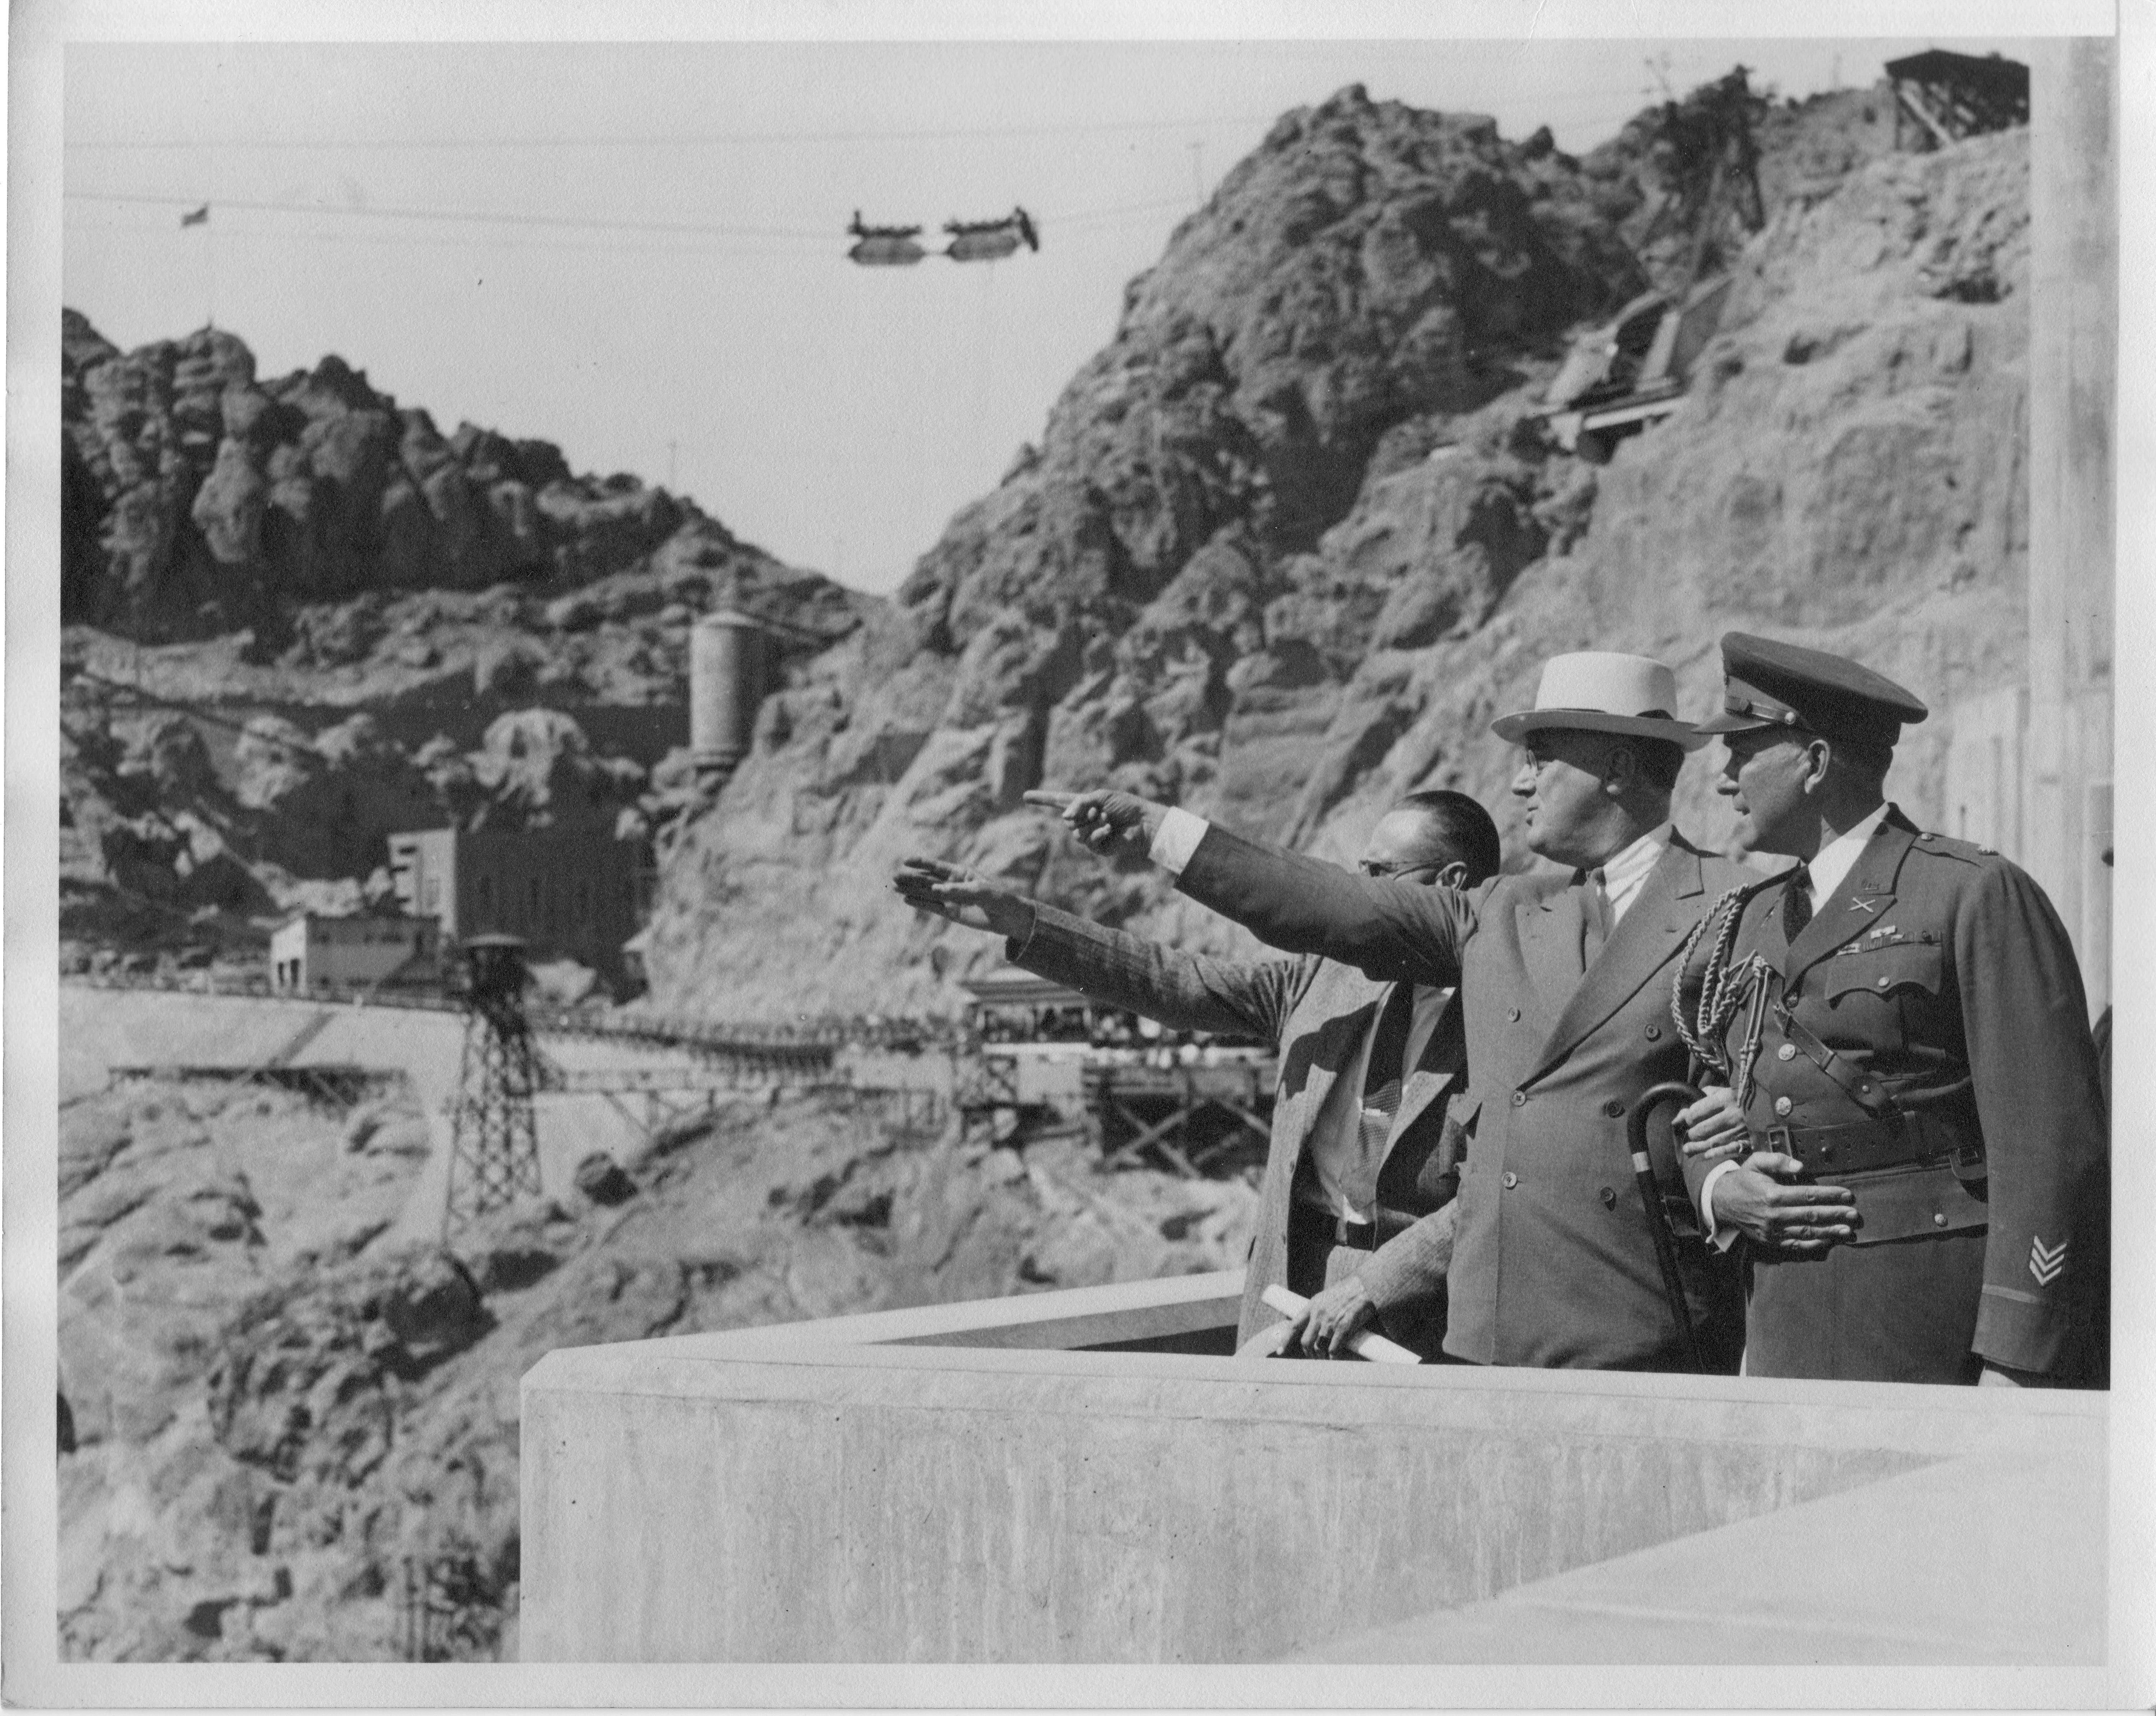 FDR at dedication of Boulder Dam, September 30, 1936